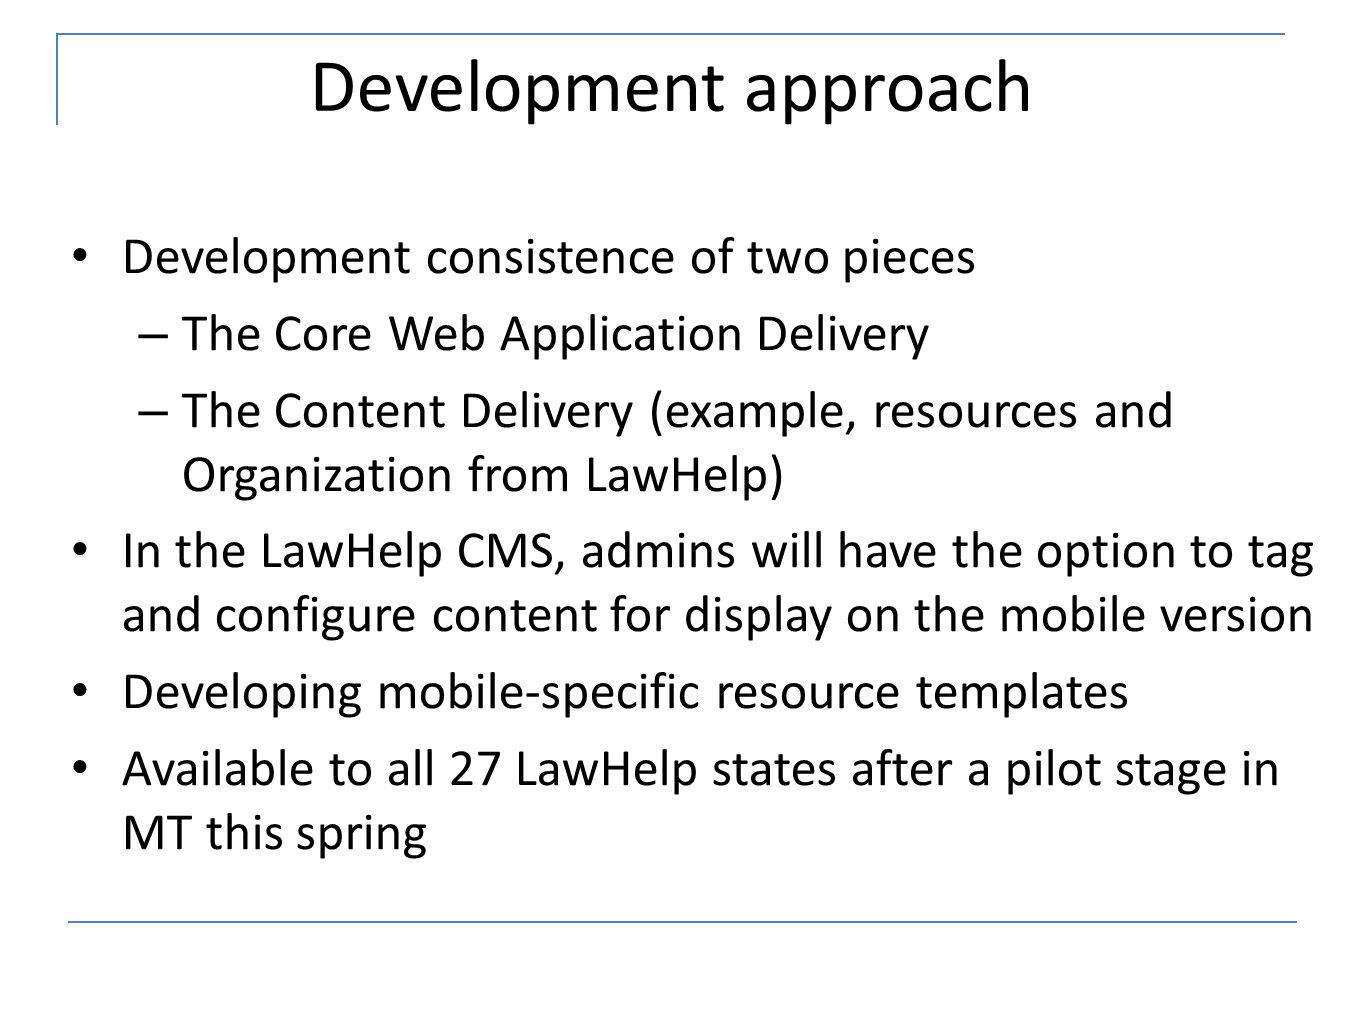 Development approach Development consistence of two pieces – The Core Web Application Delivery – The Content Delivery (example, resources and Organization from LawHelp) In the LawHelp CMS, admins will have the option to tag and configure content for display on the mobile version Developing mobile-specific resource templates Available to all 27 LawHelp states after a pilot stage in MT this spring